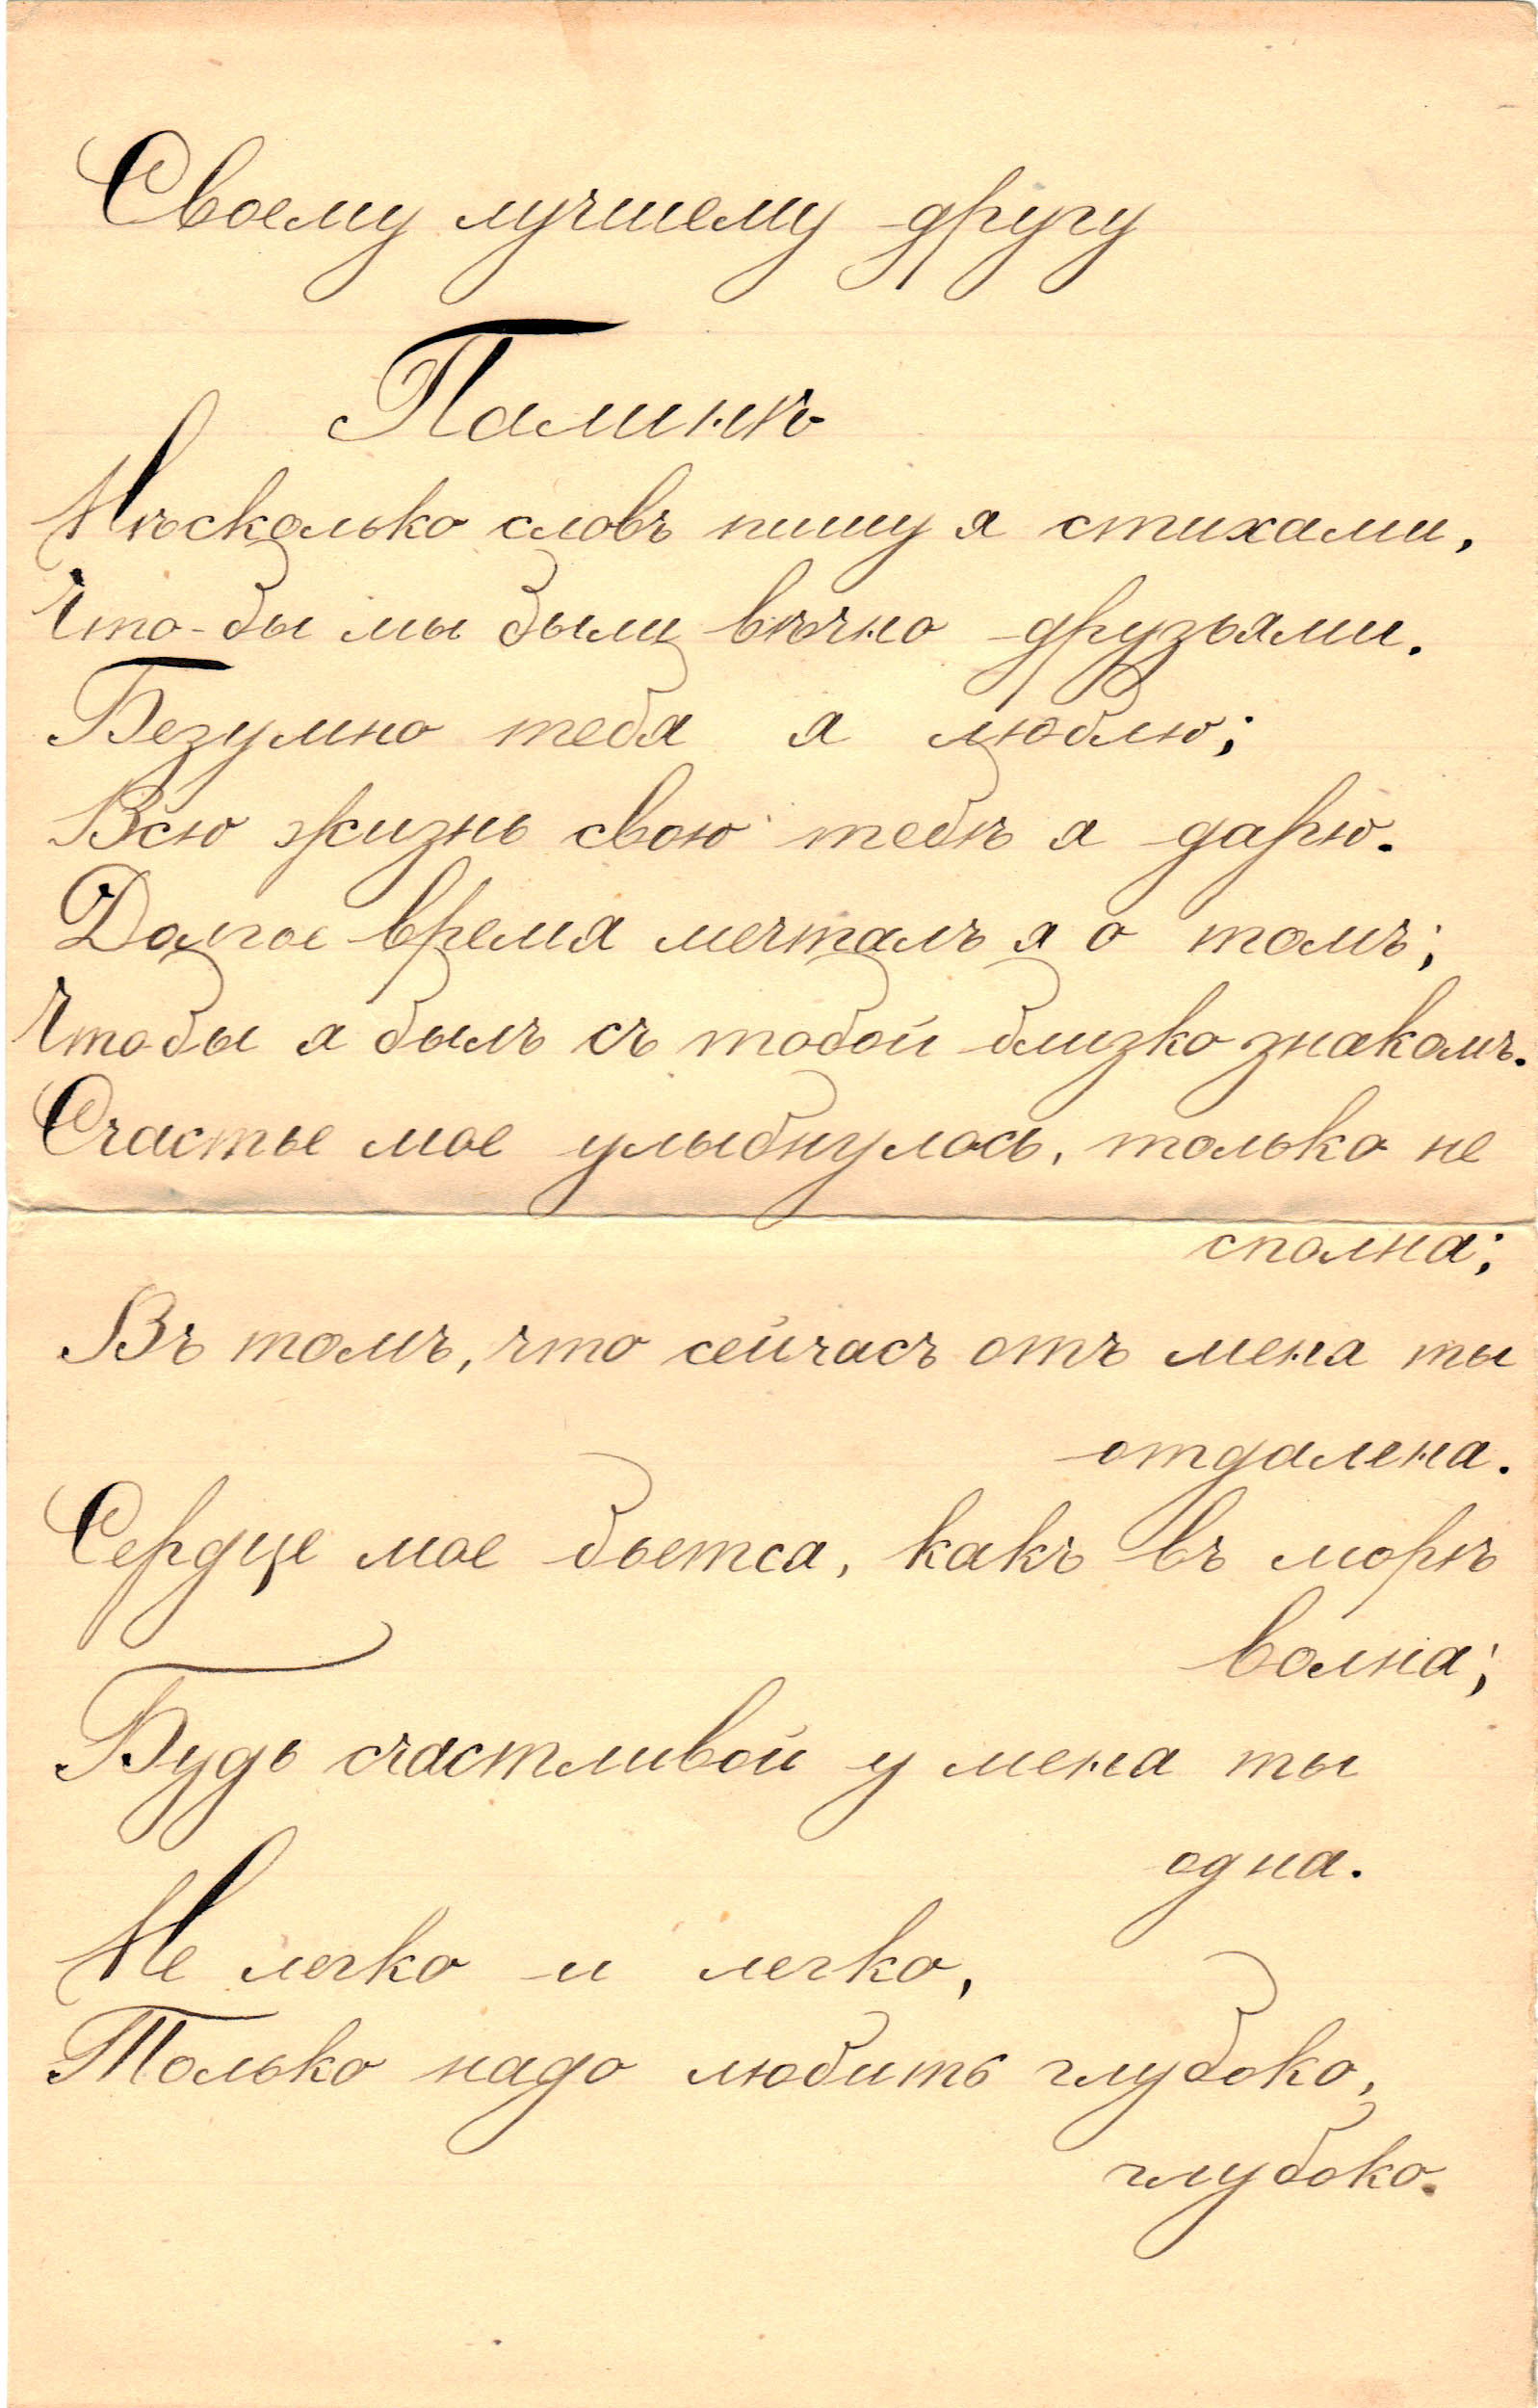 Poem from Aron to Polina February 14, 1914